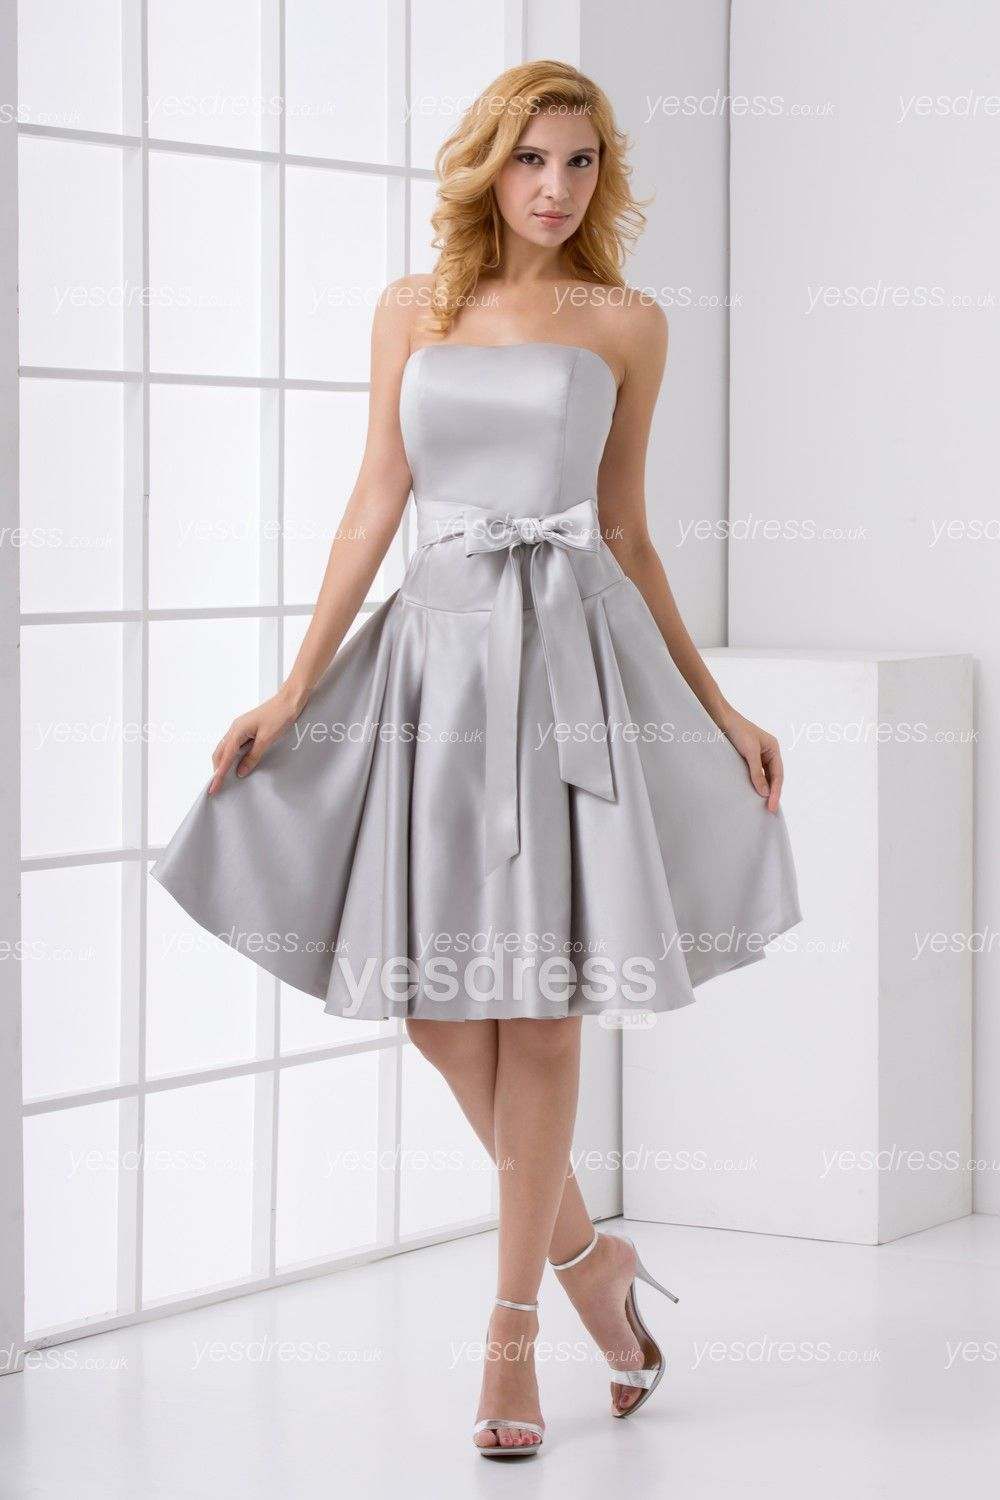 Fine A-line Strapless Knee Length Silver Short Bridesmaid Dress With ...